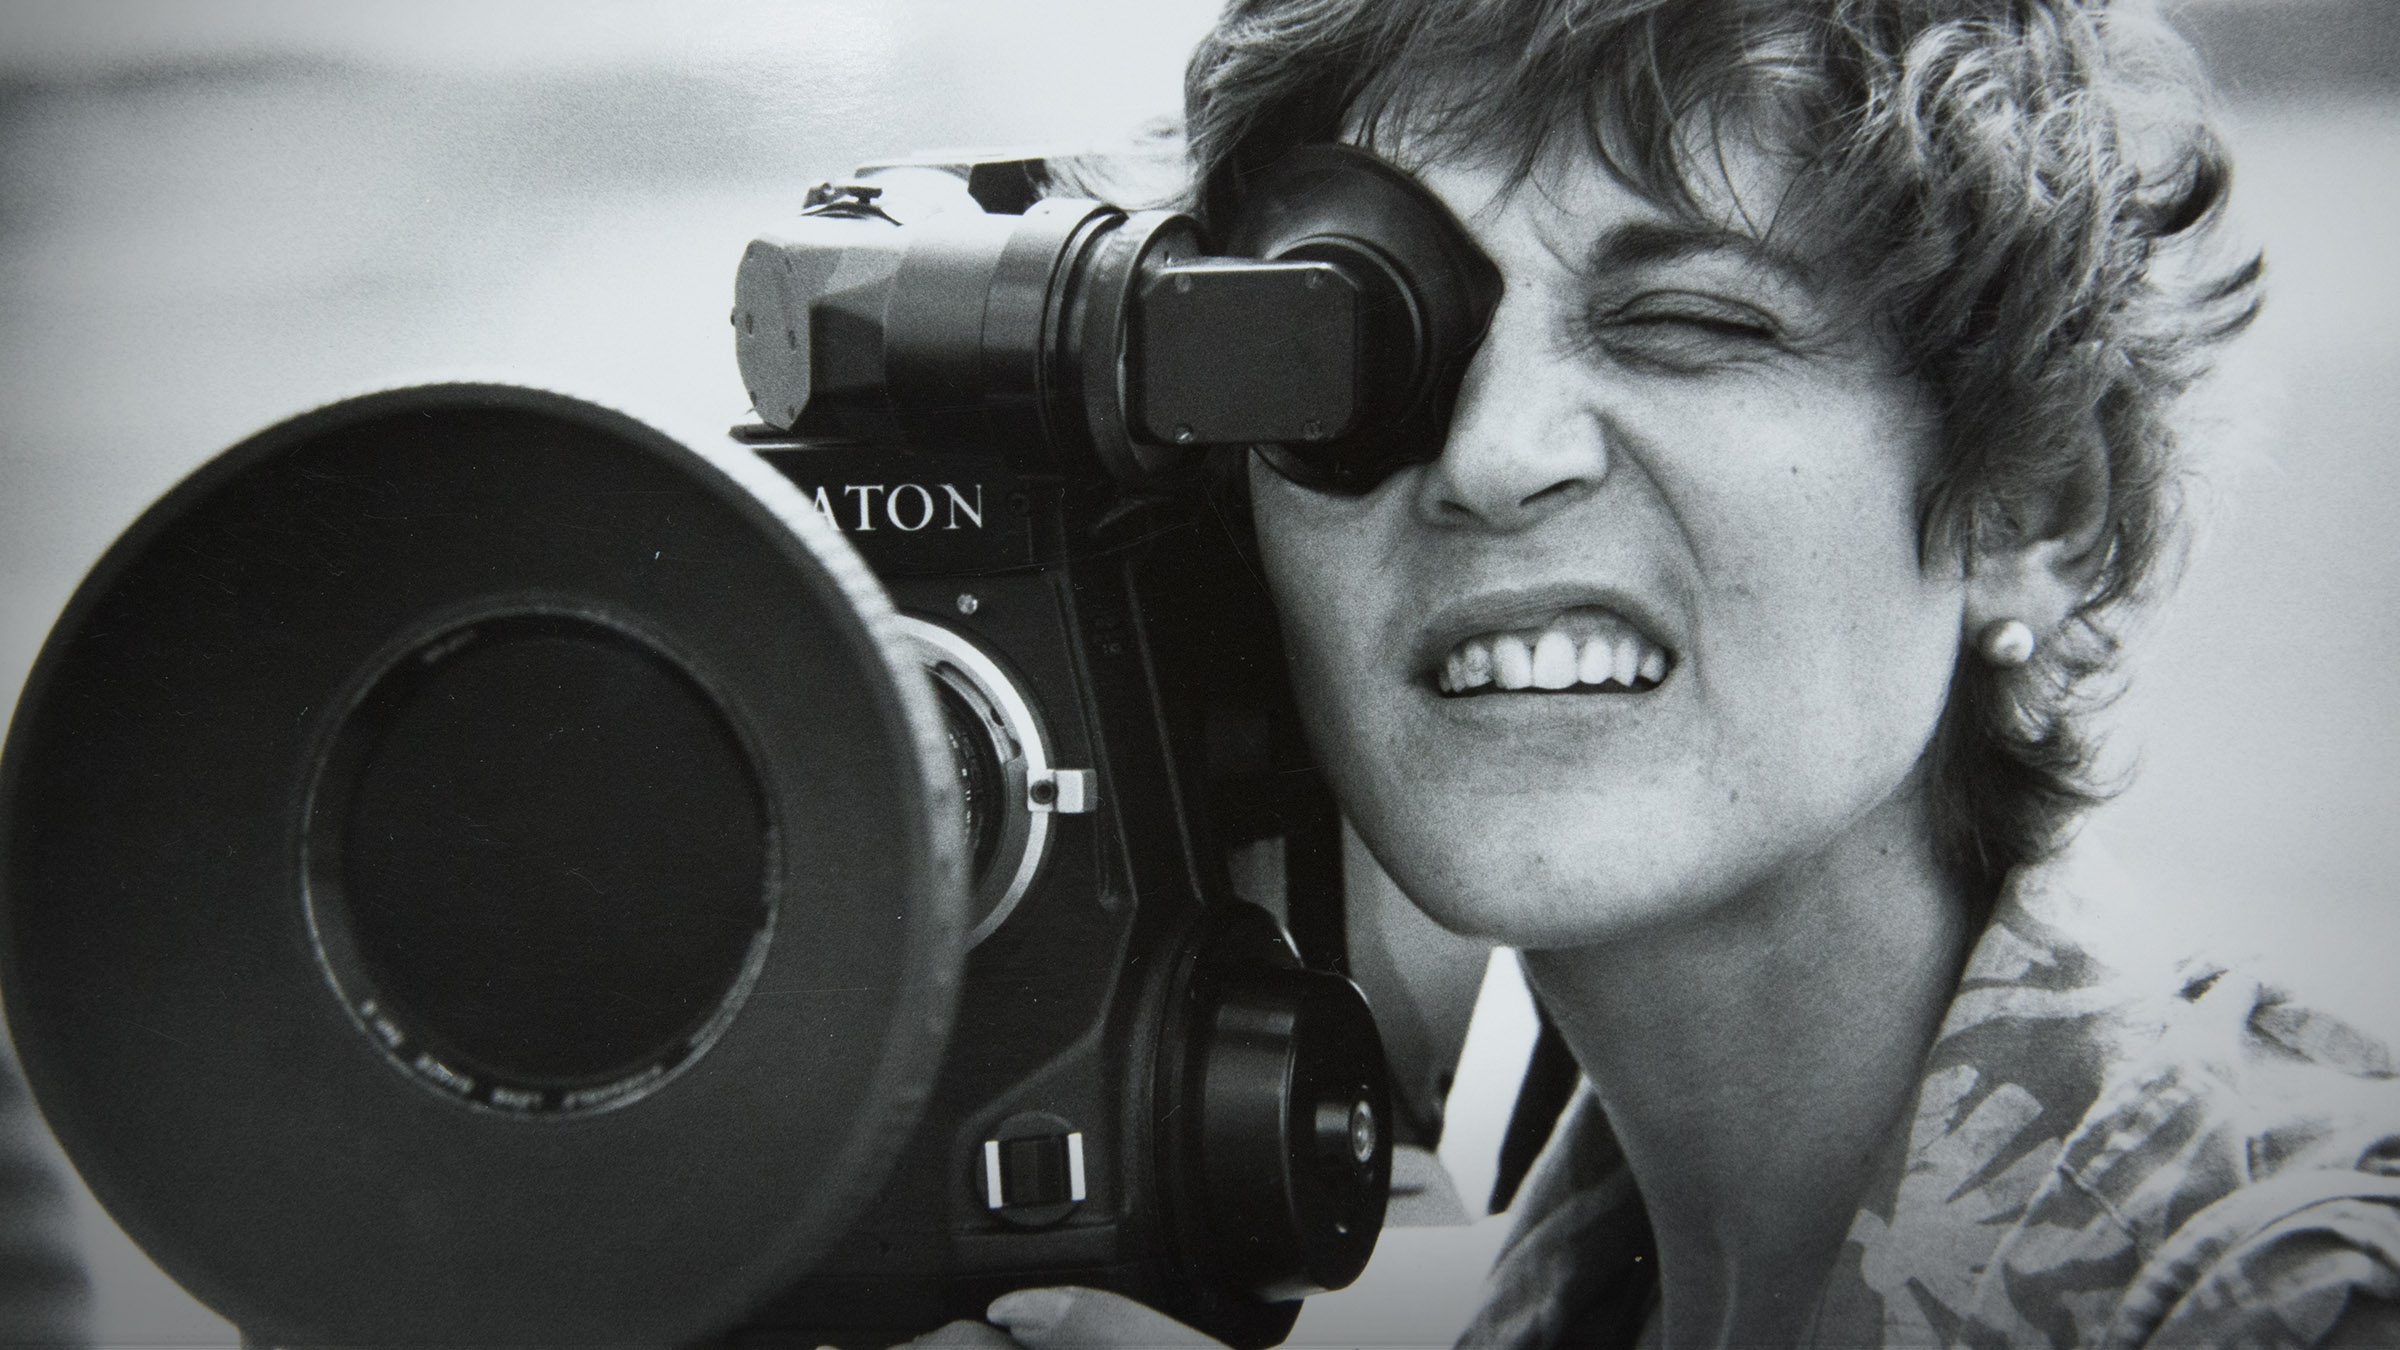 Cinematographer Nancy Schreiber on Awards, Changing Technology and Instagram - Film Independent